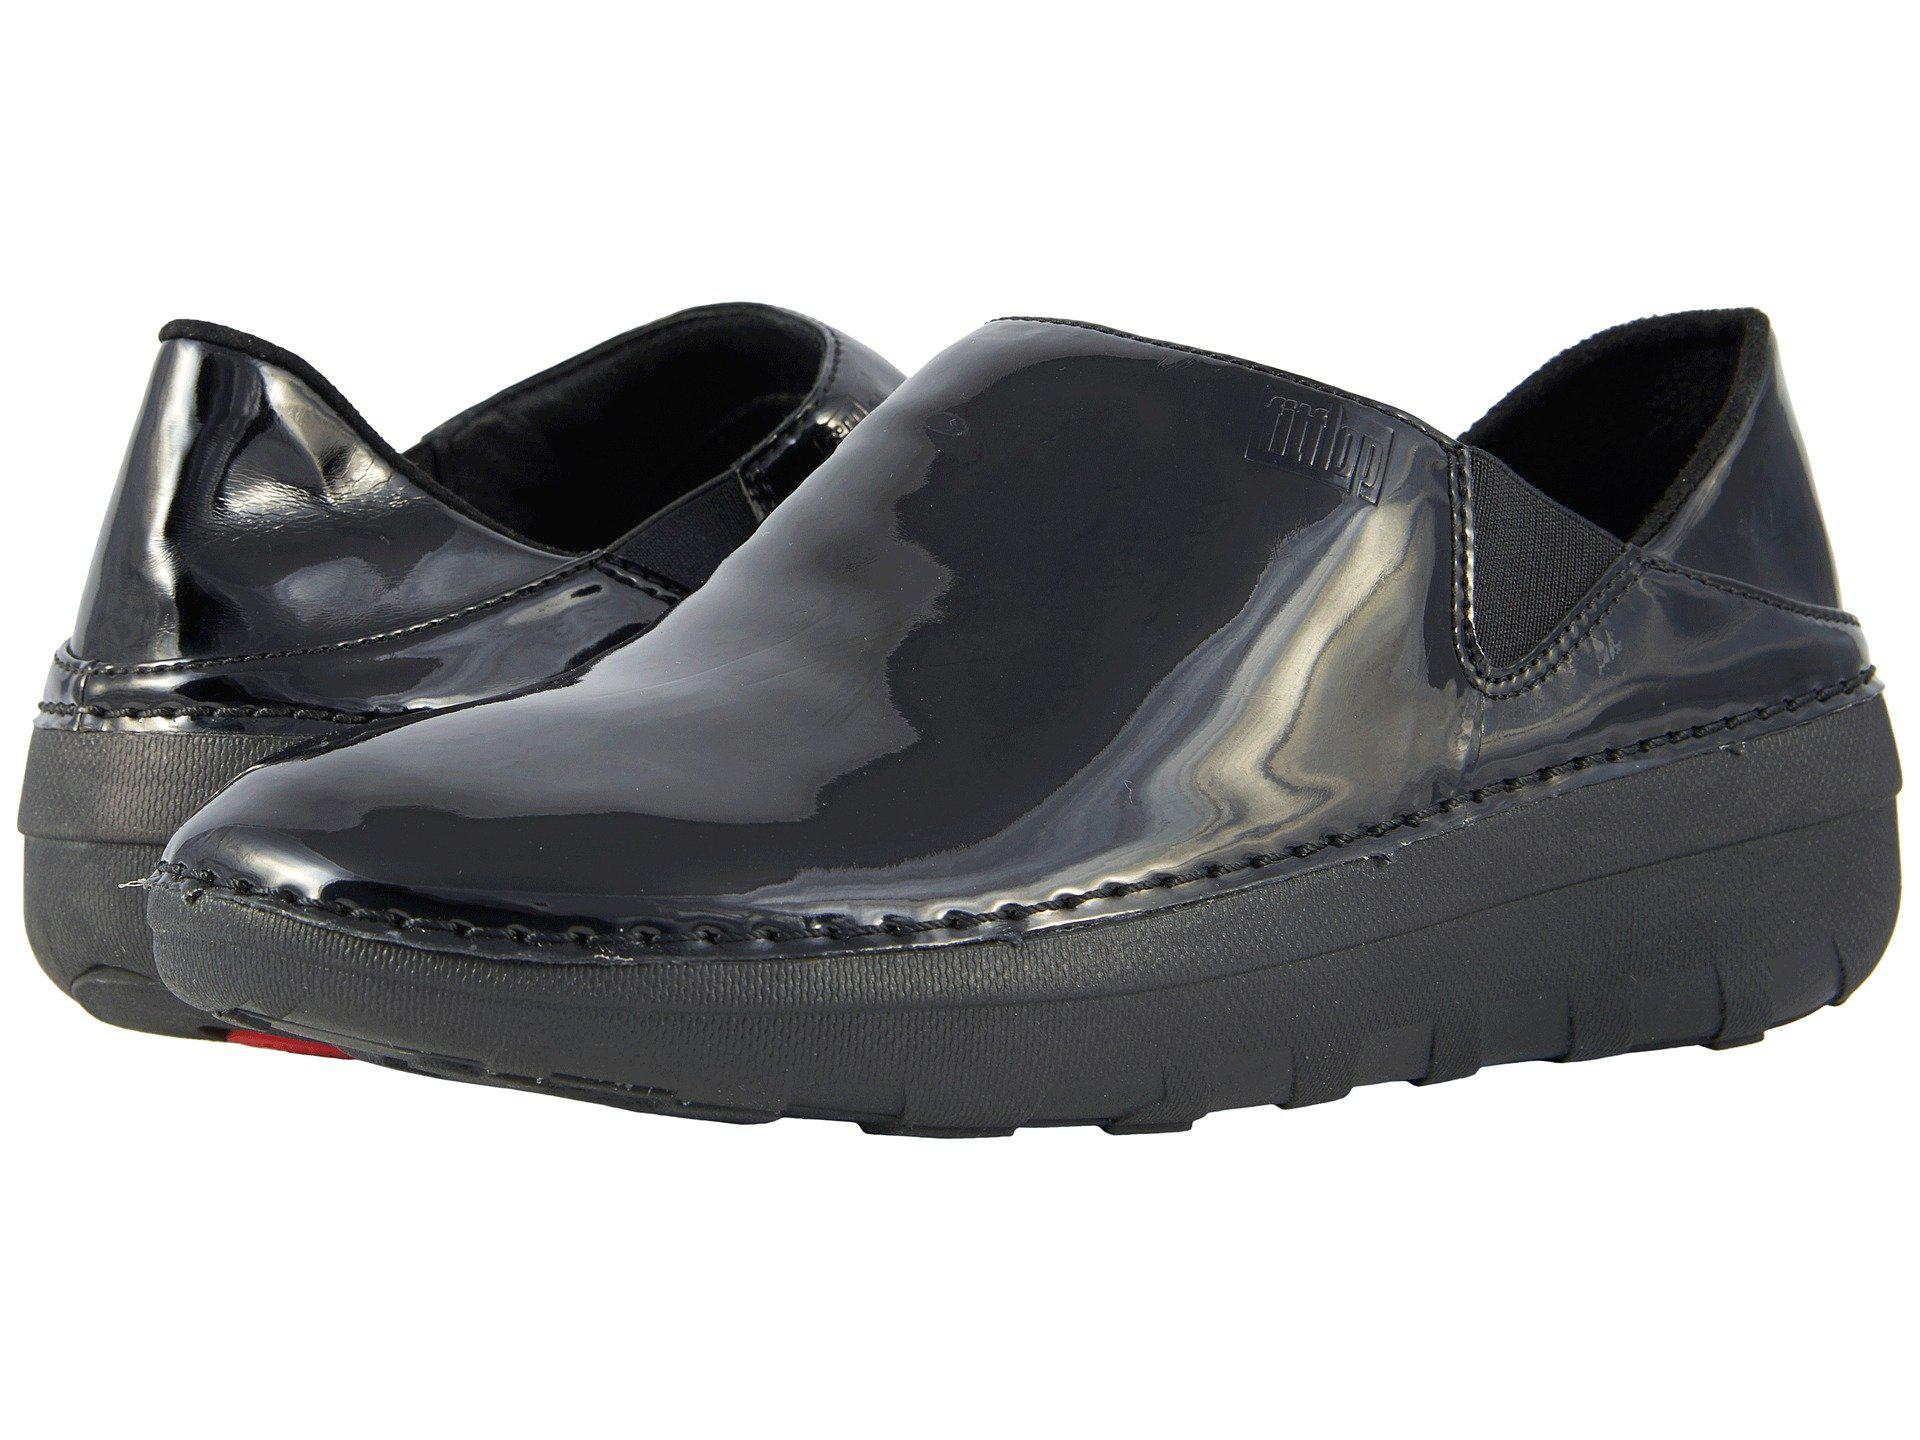 1139b0d03 Lyst - Fitflop Superloafer Patent (black) Women s Slip On Shoes in Black